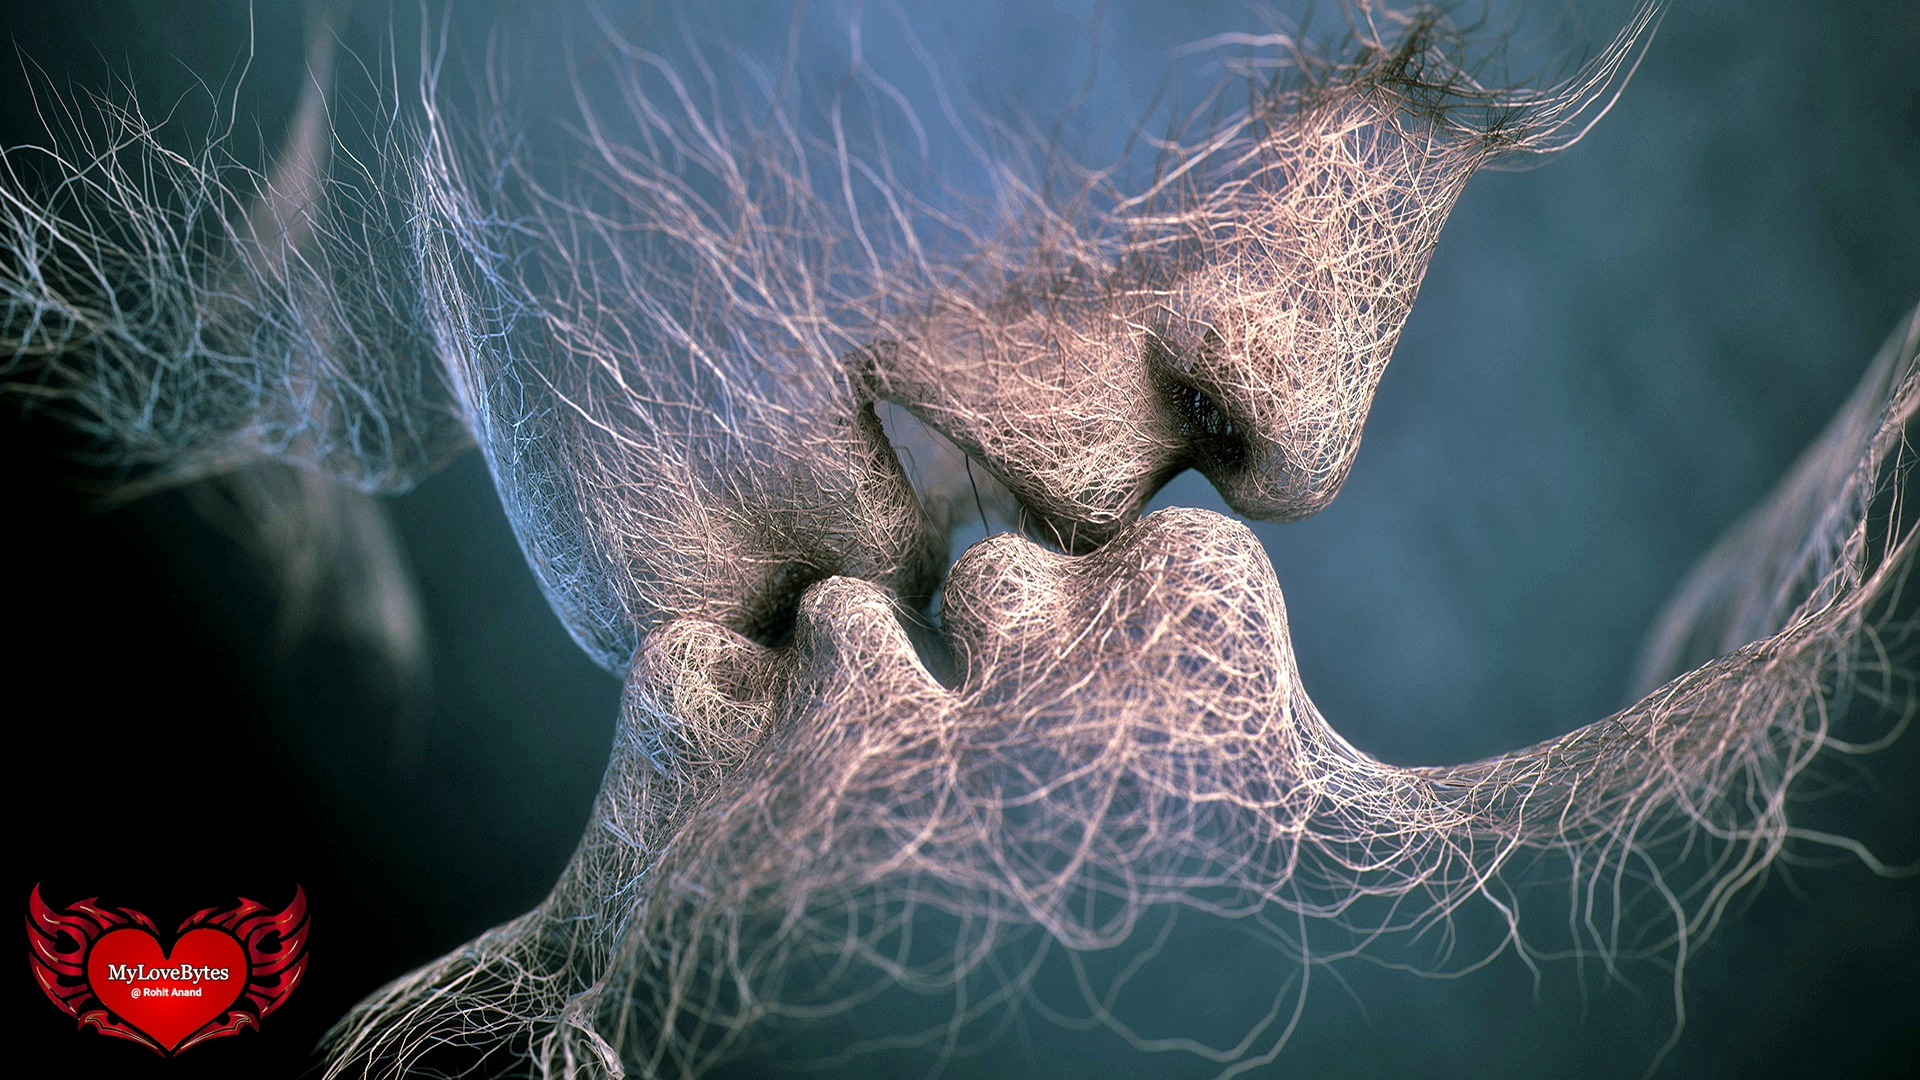 Romantic & Sweet Love Wallpaper Photos in HD Full Size for Free download in widescreen full size